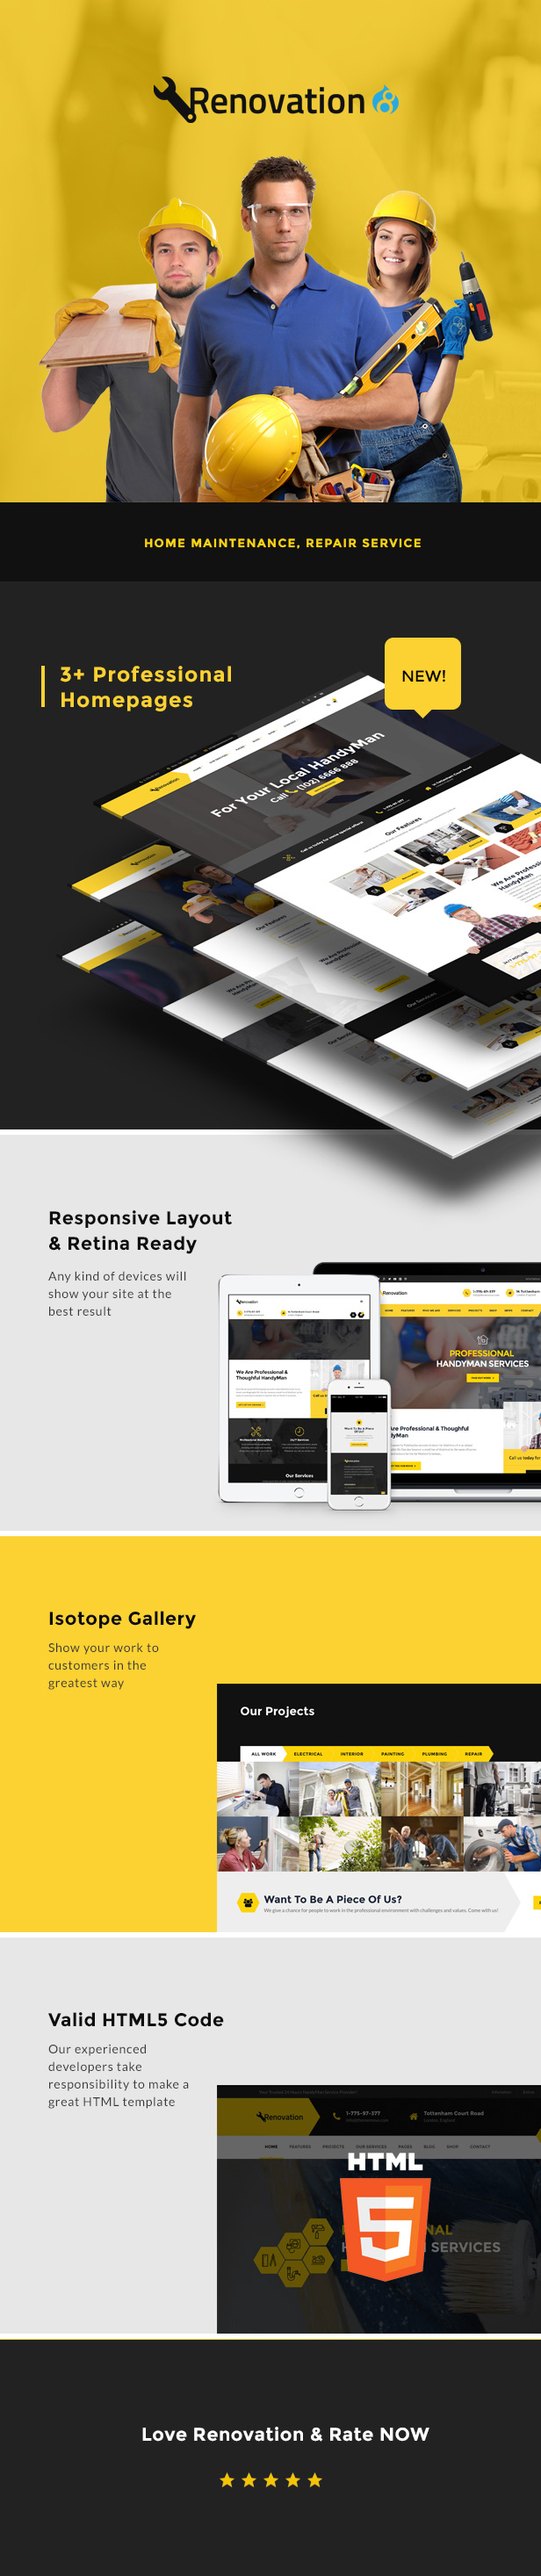 Pin By Smith Alice On Drupal Commerce Templates Pinterest Drupal